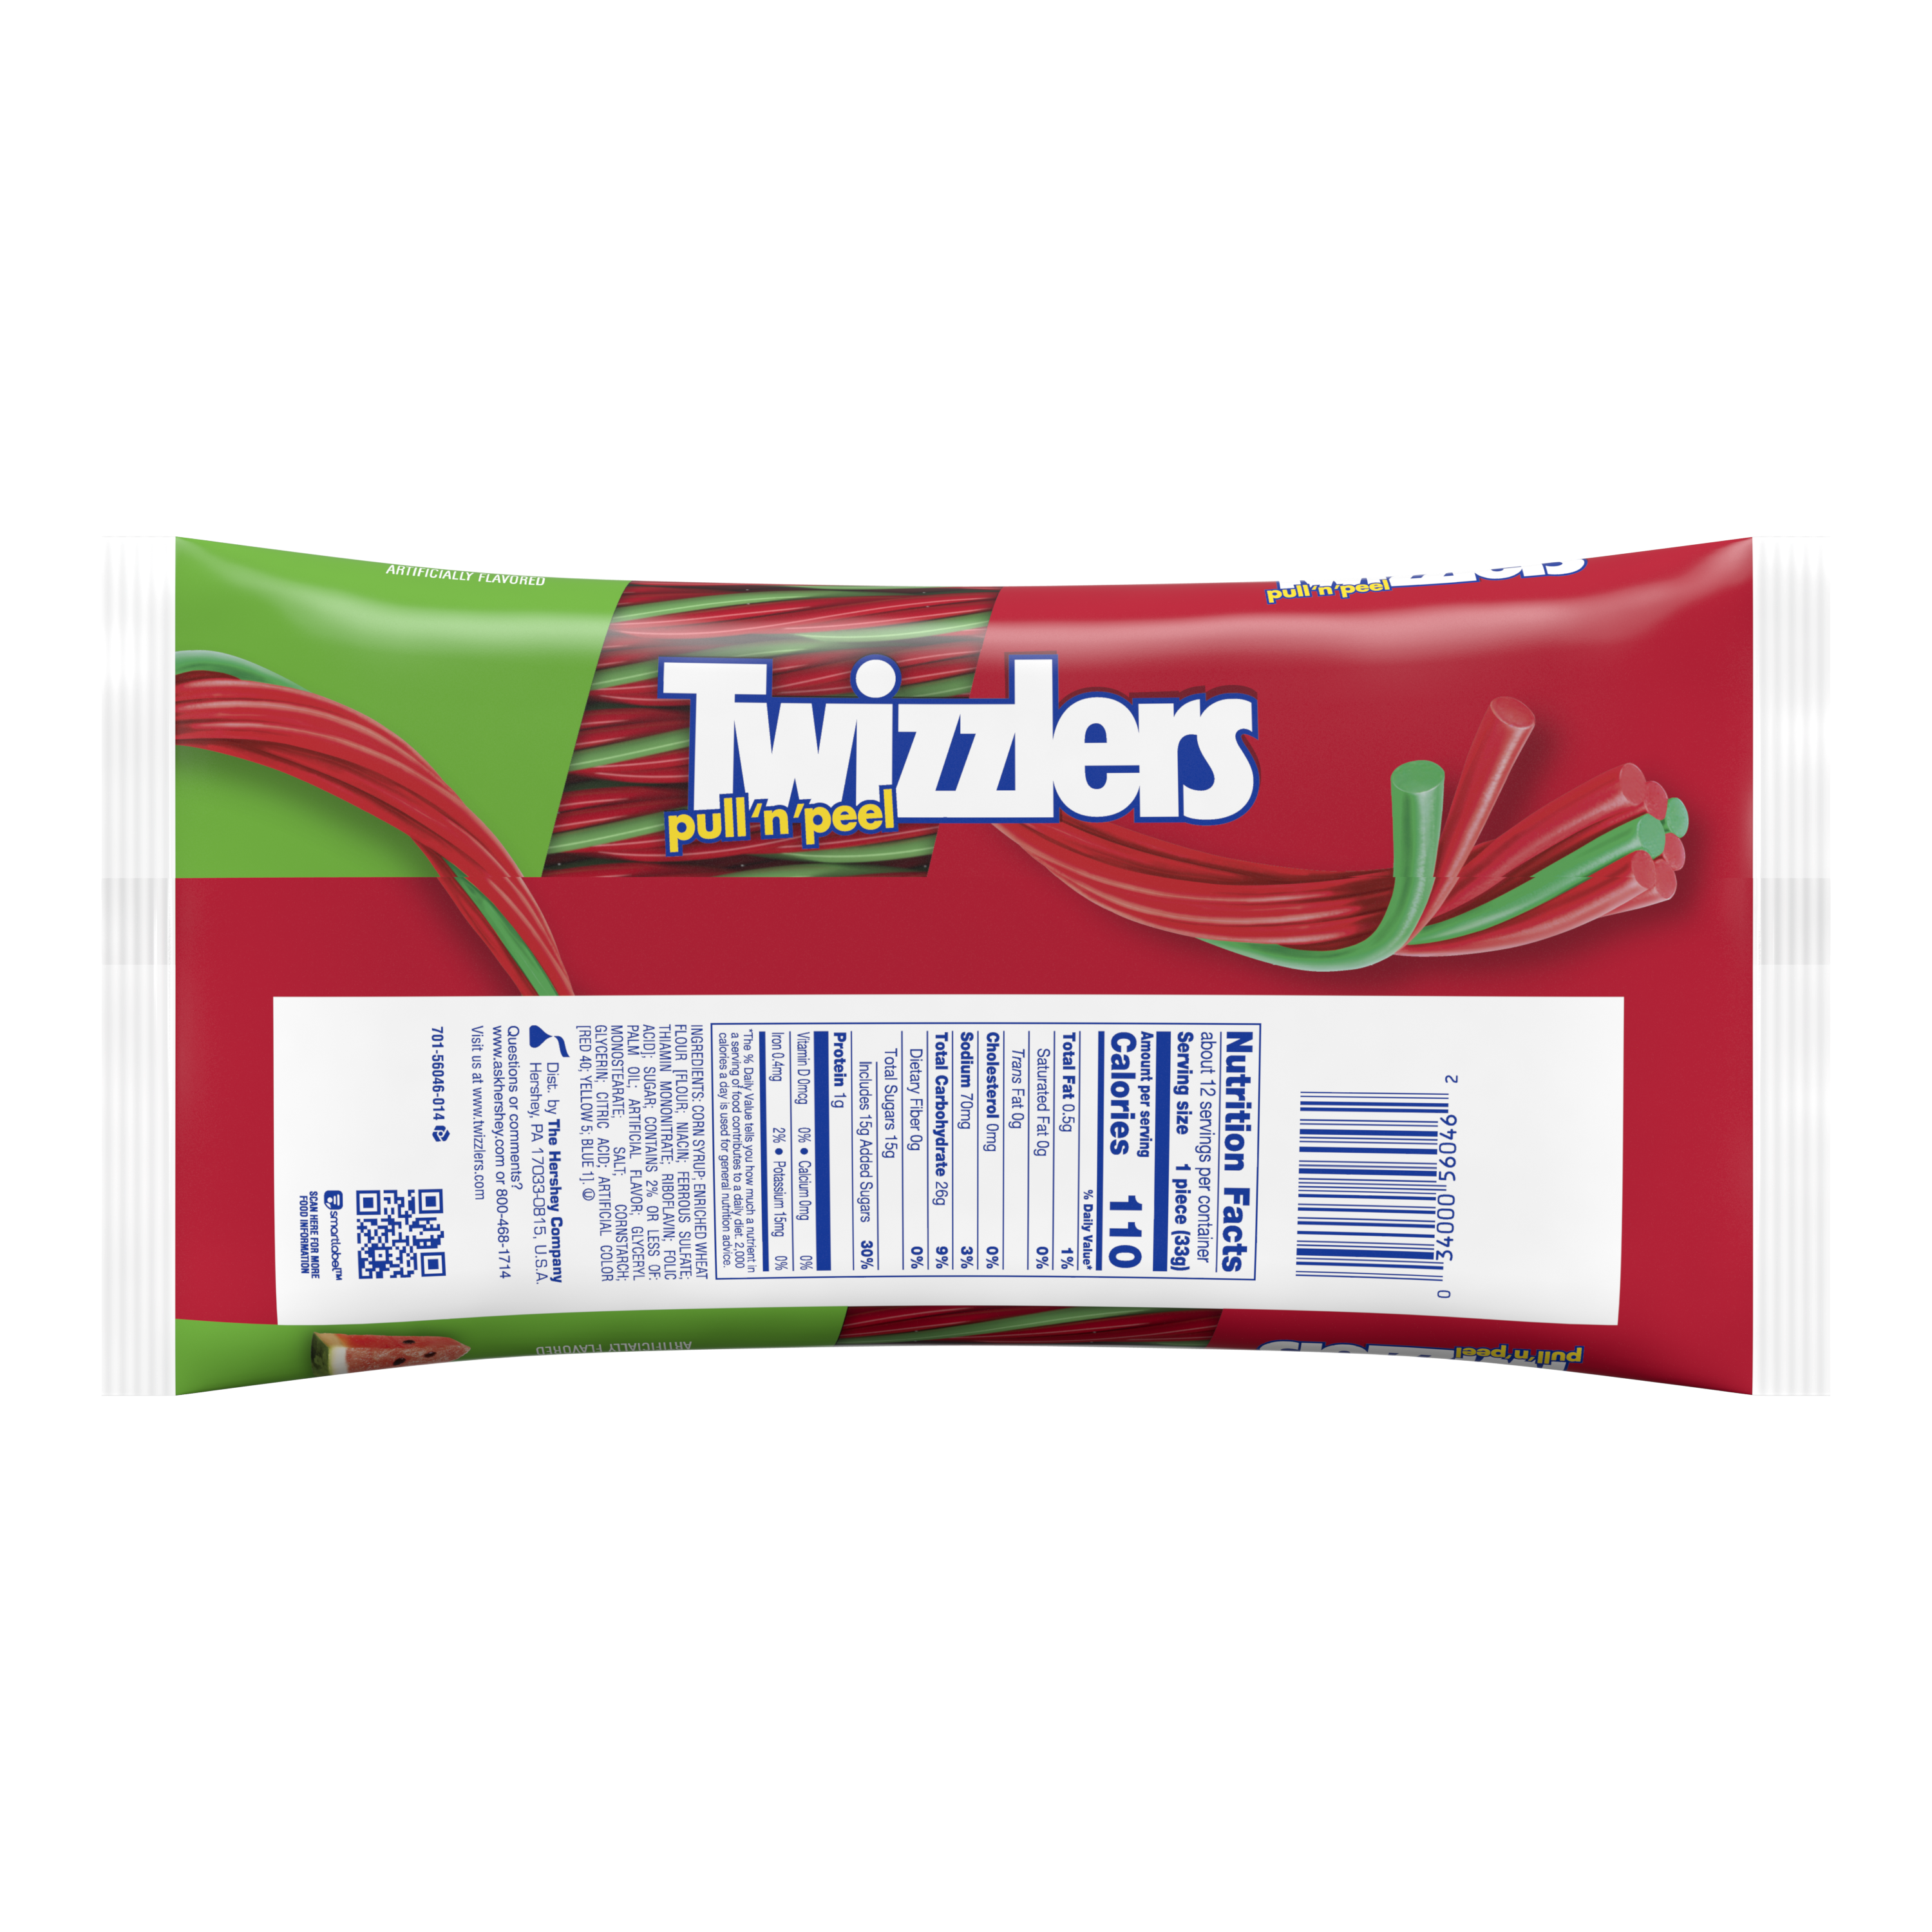 TWIZZLERS PULL 'N' PEEL Watermelon Flavored Candy, 14 oz bag - Back of Package